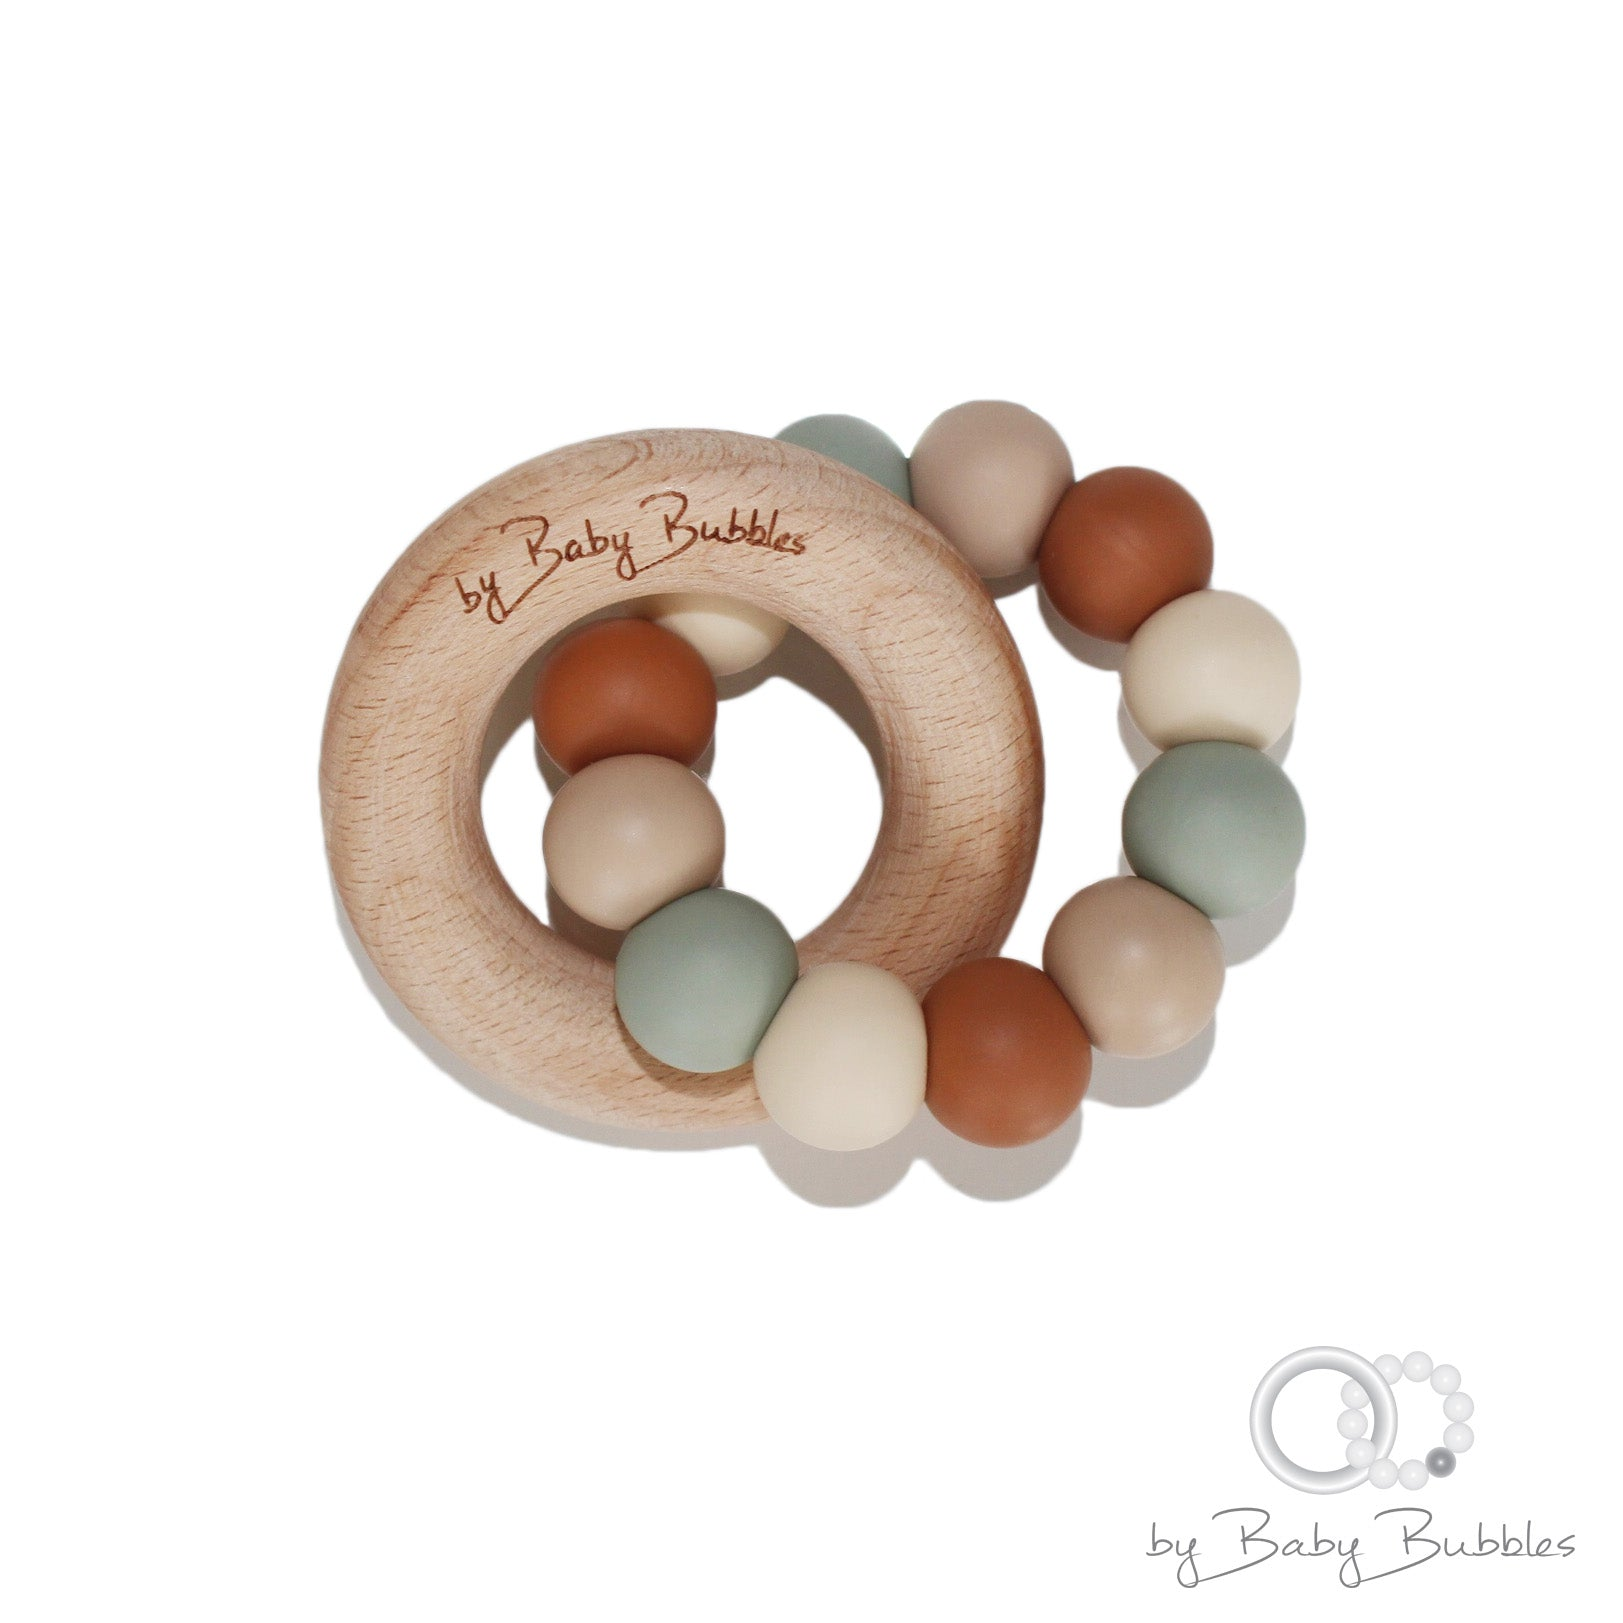 Silicone baby teething ring in earthy colors and wooden ring